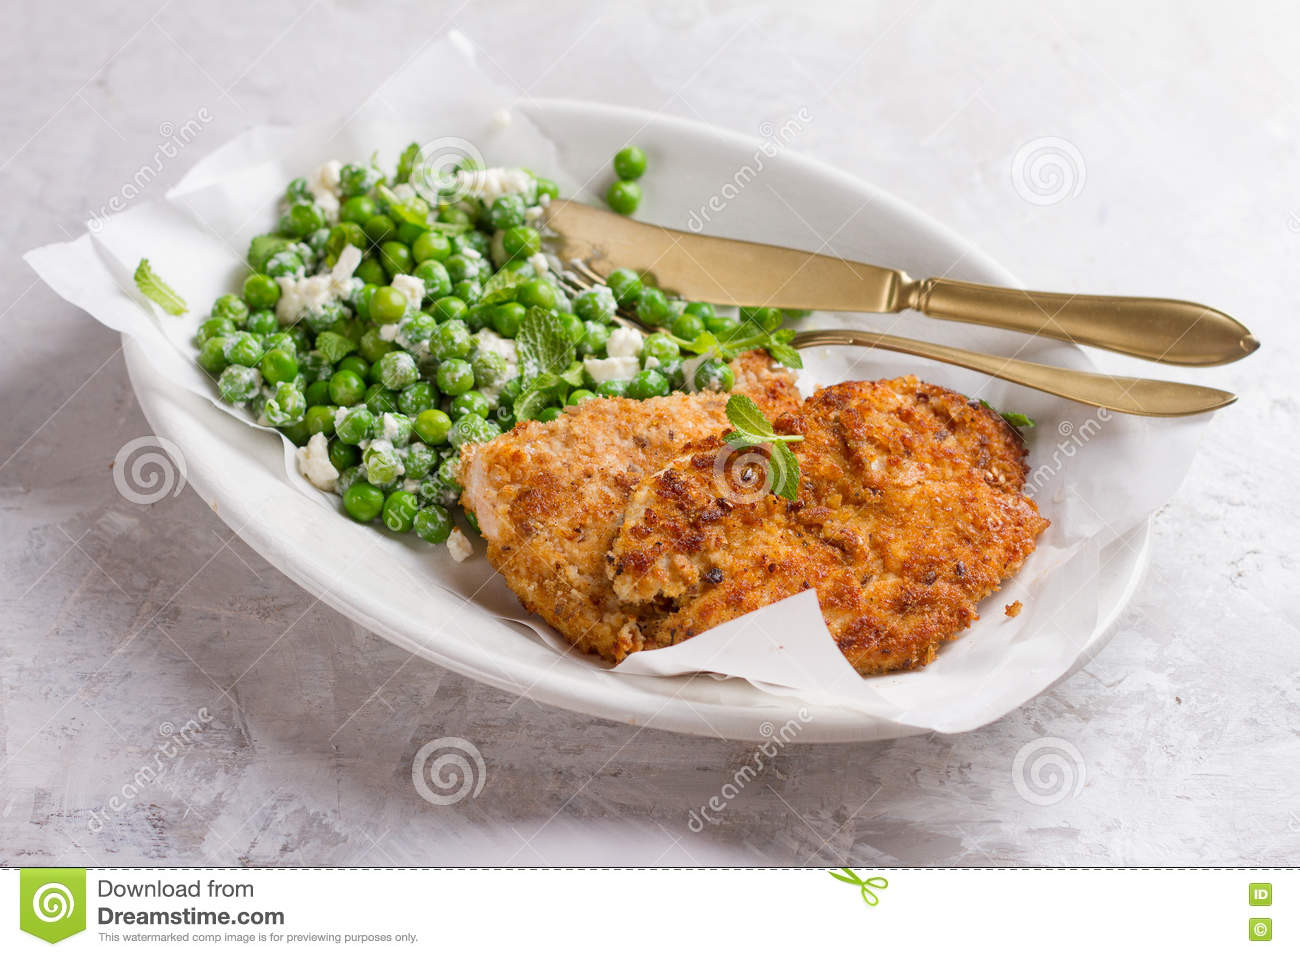 Chicken or pork schnitzel with cheese and peas salad